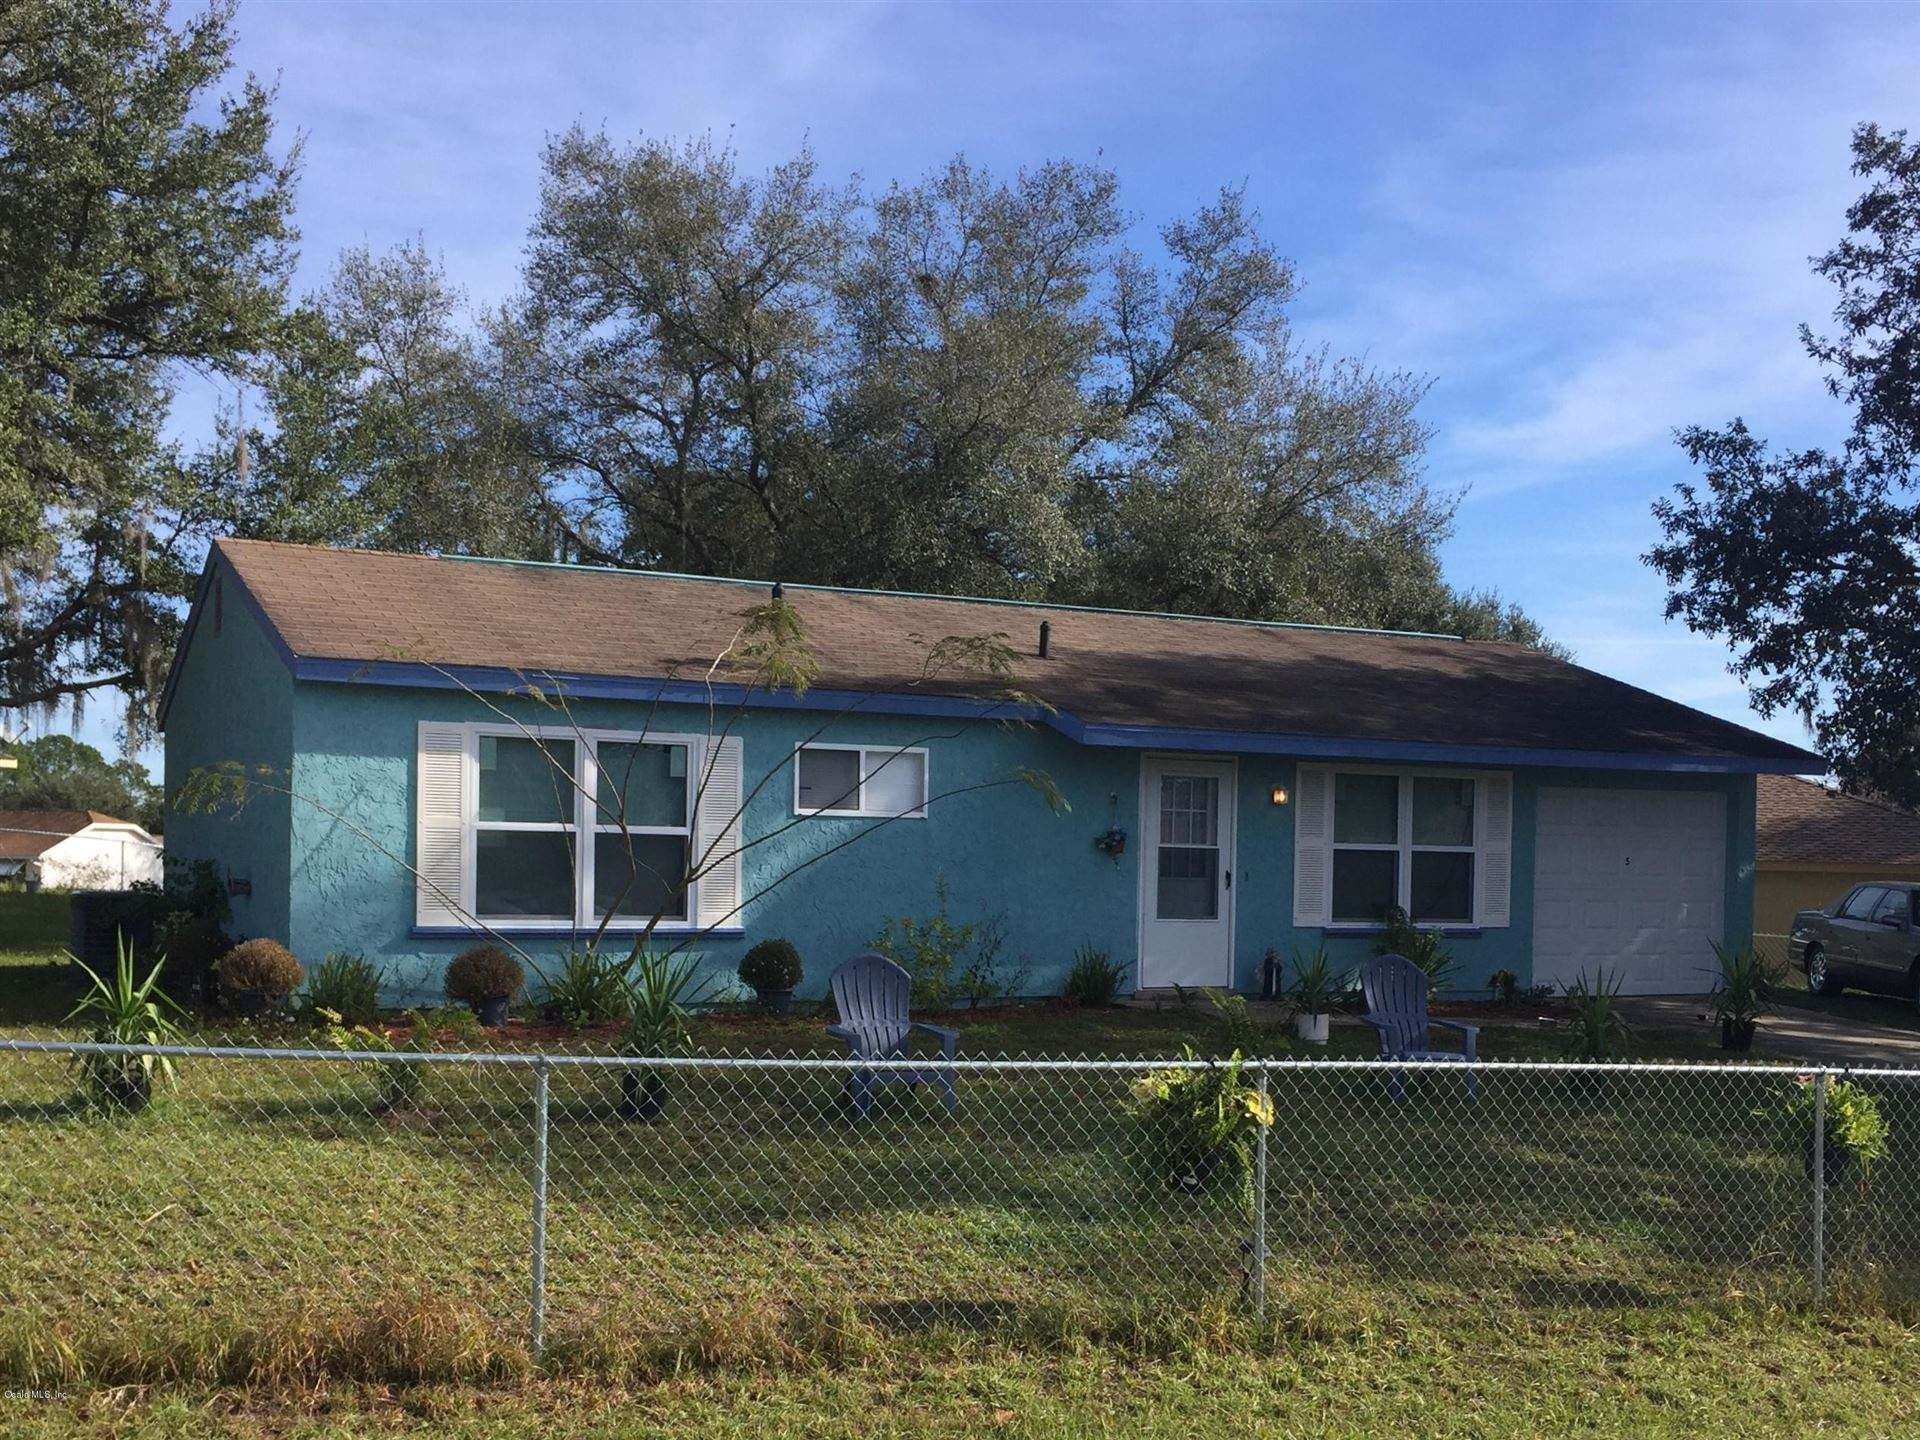 5 Oak Court, Ocala, FL 34472 - MLS#: 547642